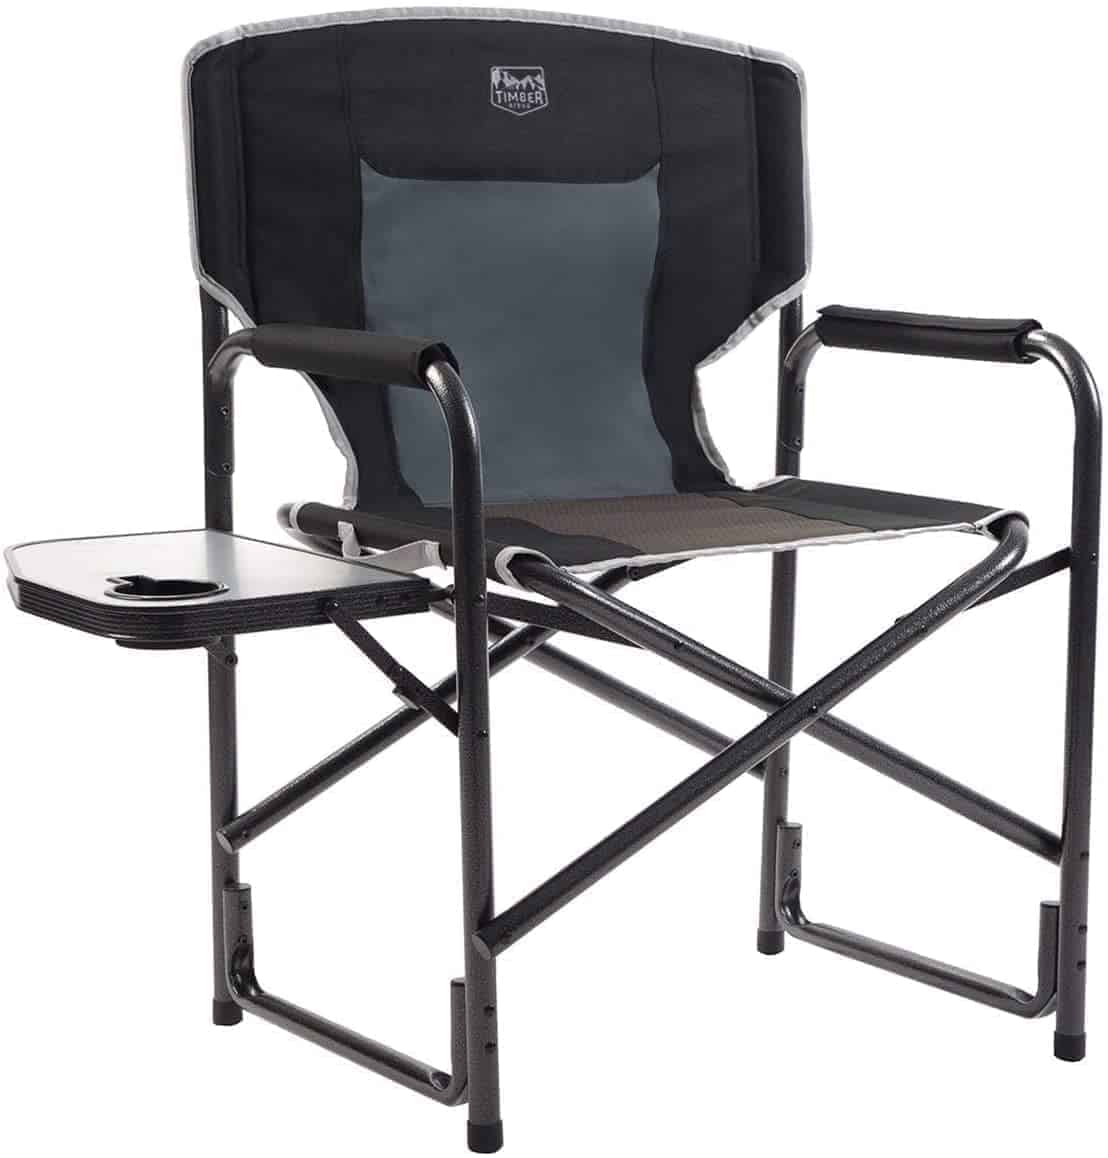 Folding-Chair-with-Table-Fathers-Day-Gift-Ideas